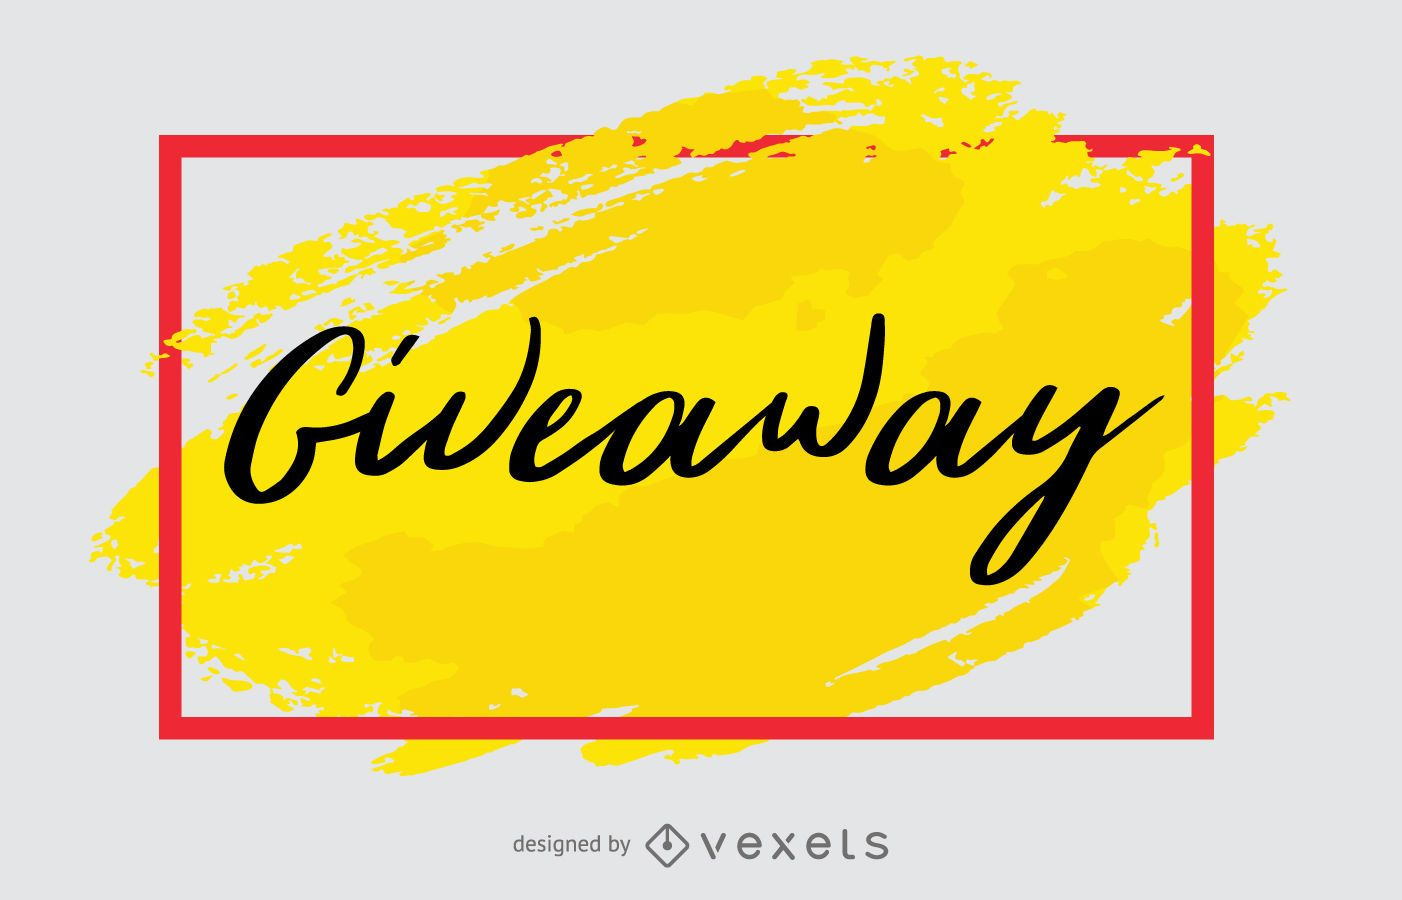 giveaway generic promo banner design vector download